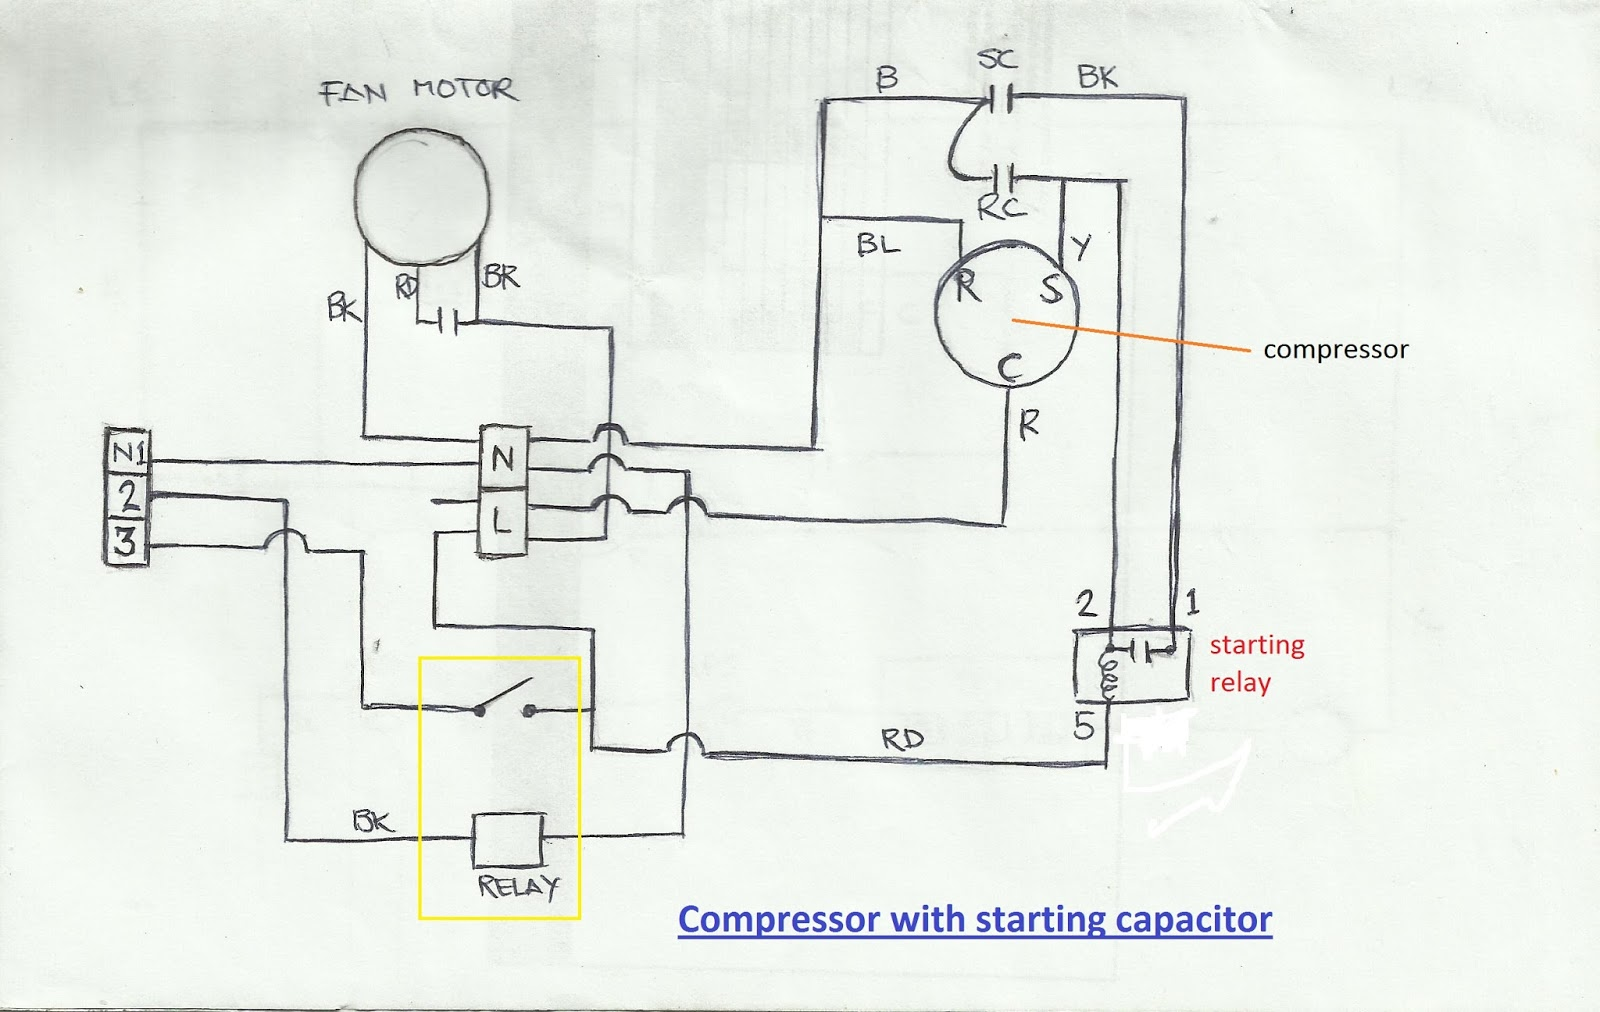 18 refrigeration and air conditioning repair wiring diagram of air conditioner compressor wiring diagram at crackthecode.co